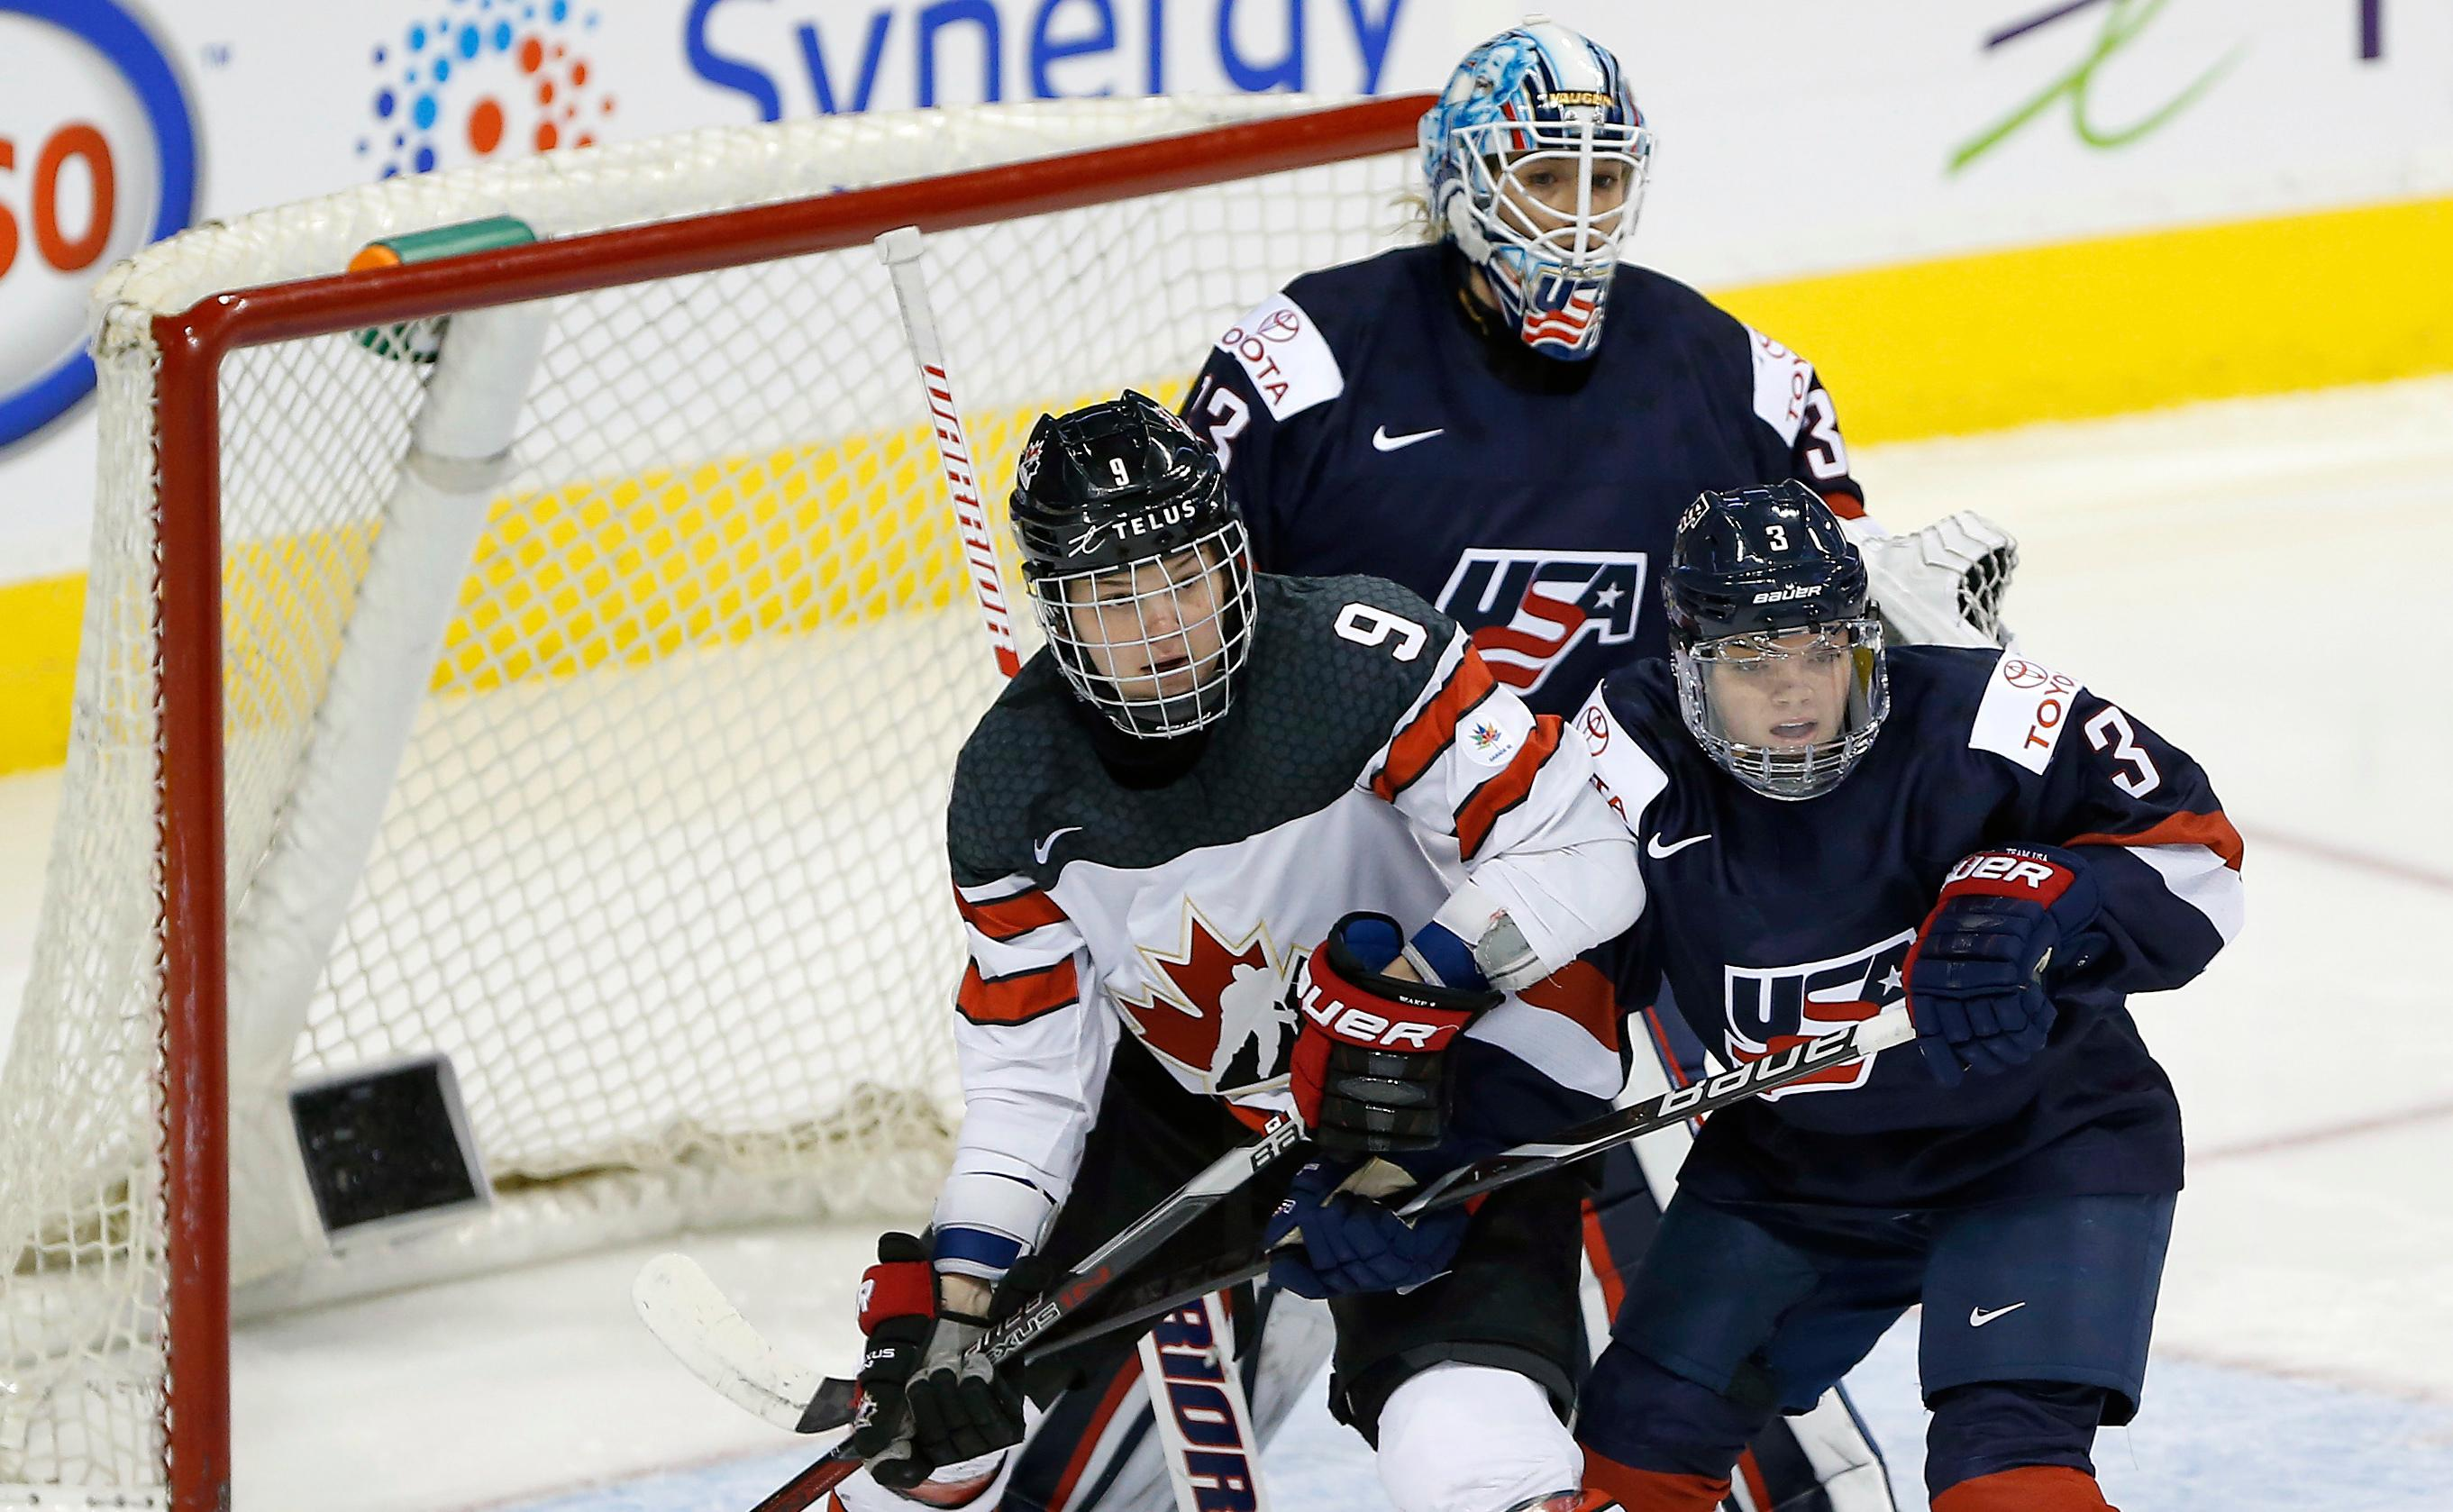 In this Tuesday, Dec. 5, 2017 photo, United States' Cayla Barnes (3) defends against Canada's Jennifer Wakefield (9) as USA's goaltender Alex Rigsby (33) keeps her eye on the puck during the third period of a women's hockey game in Winnipeg, Manitoba. Days after watching the U.S. women lose 5-1 to Canada in Boston on Oct. 25, Barnes learned she was moving from the bleachers to the bench as a call-up to the national team with the chance to earn a roster spot for the 2018 Winter Olympics. The defender, who turned 18 in January, quickly withdrew from college to become the U.S. team's youngest player chasing an opportunity that had seemed four years away. (John Woods/The Canadian Press via AP)